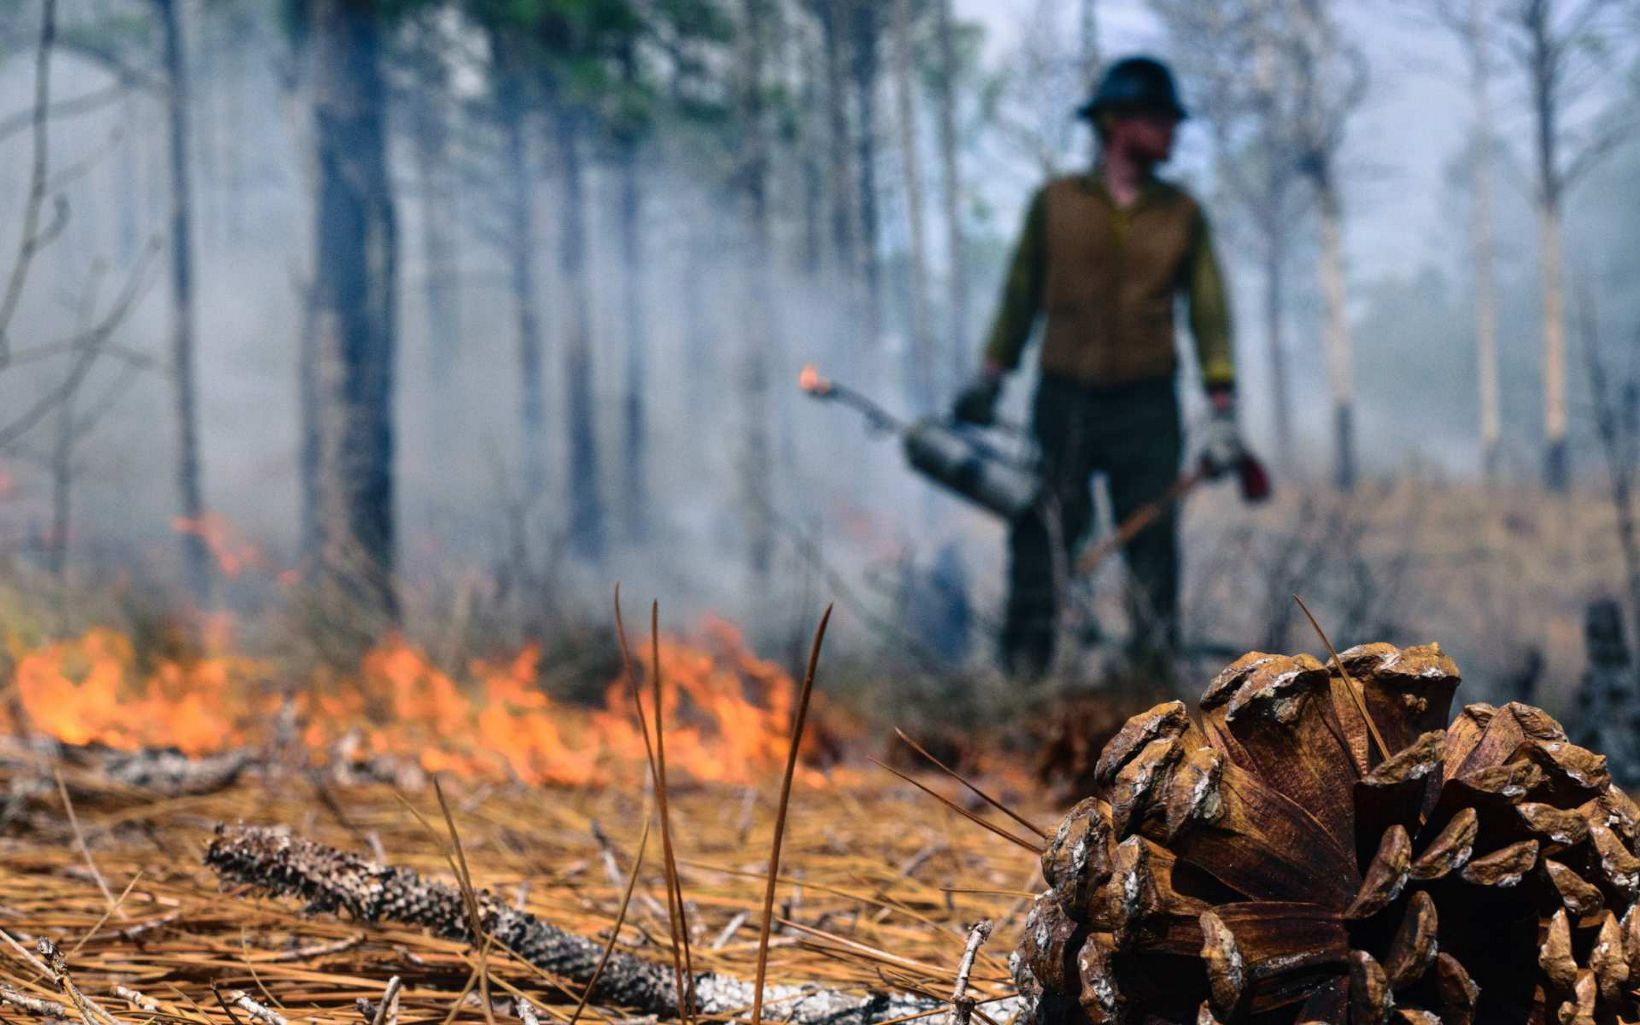 a firefighter stands with a drip torch in a forest